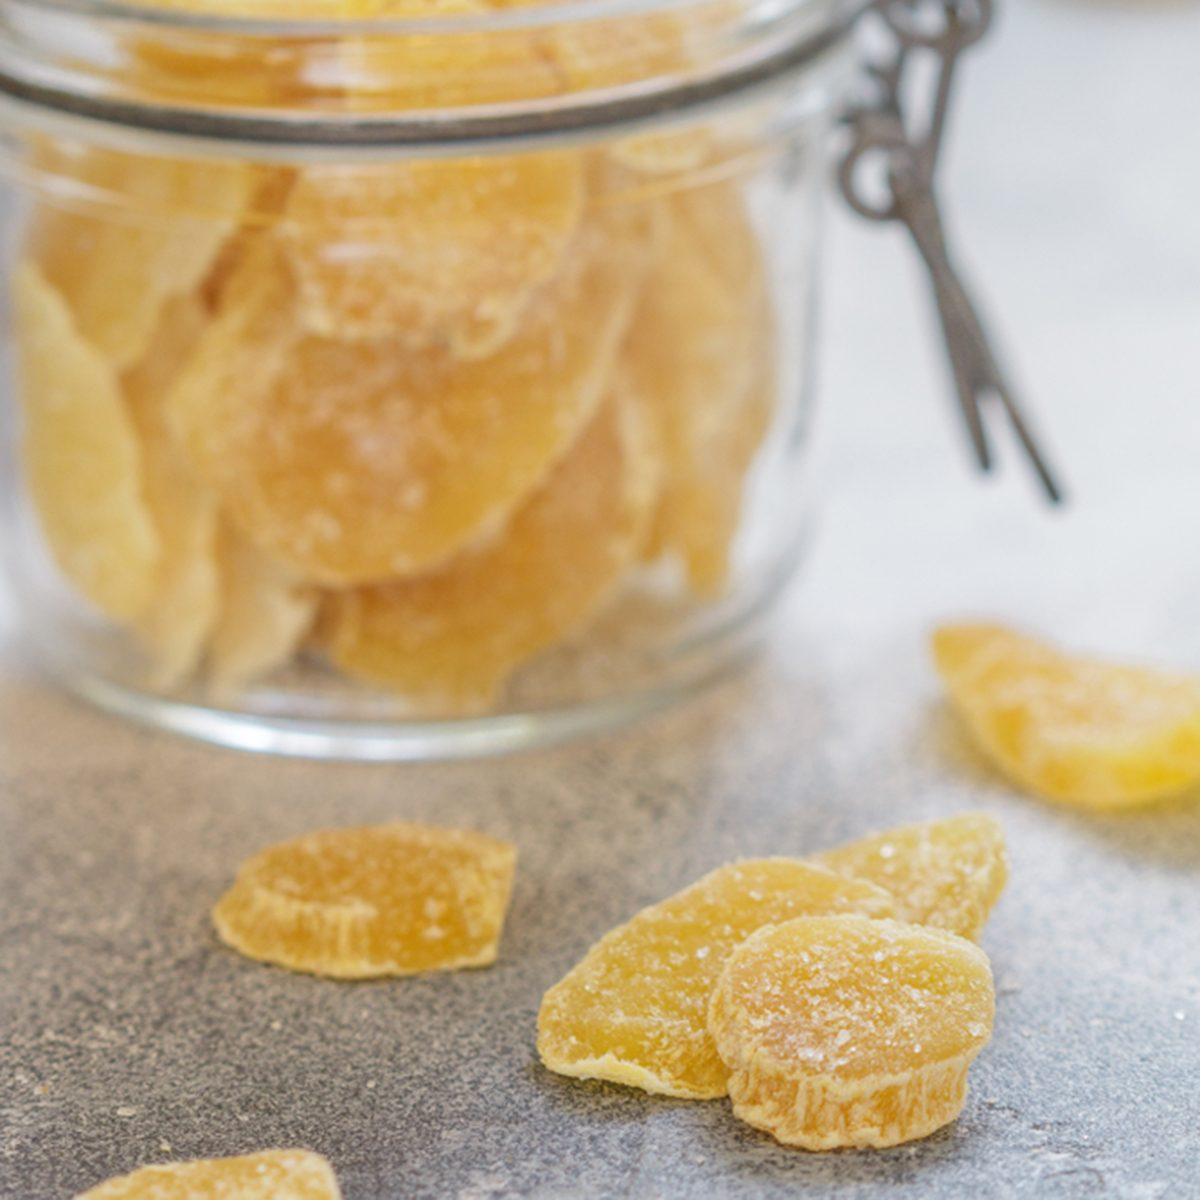 Candied ginger slices.